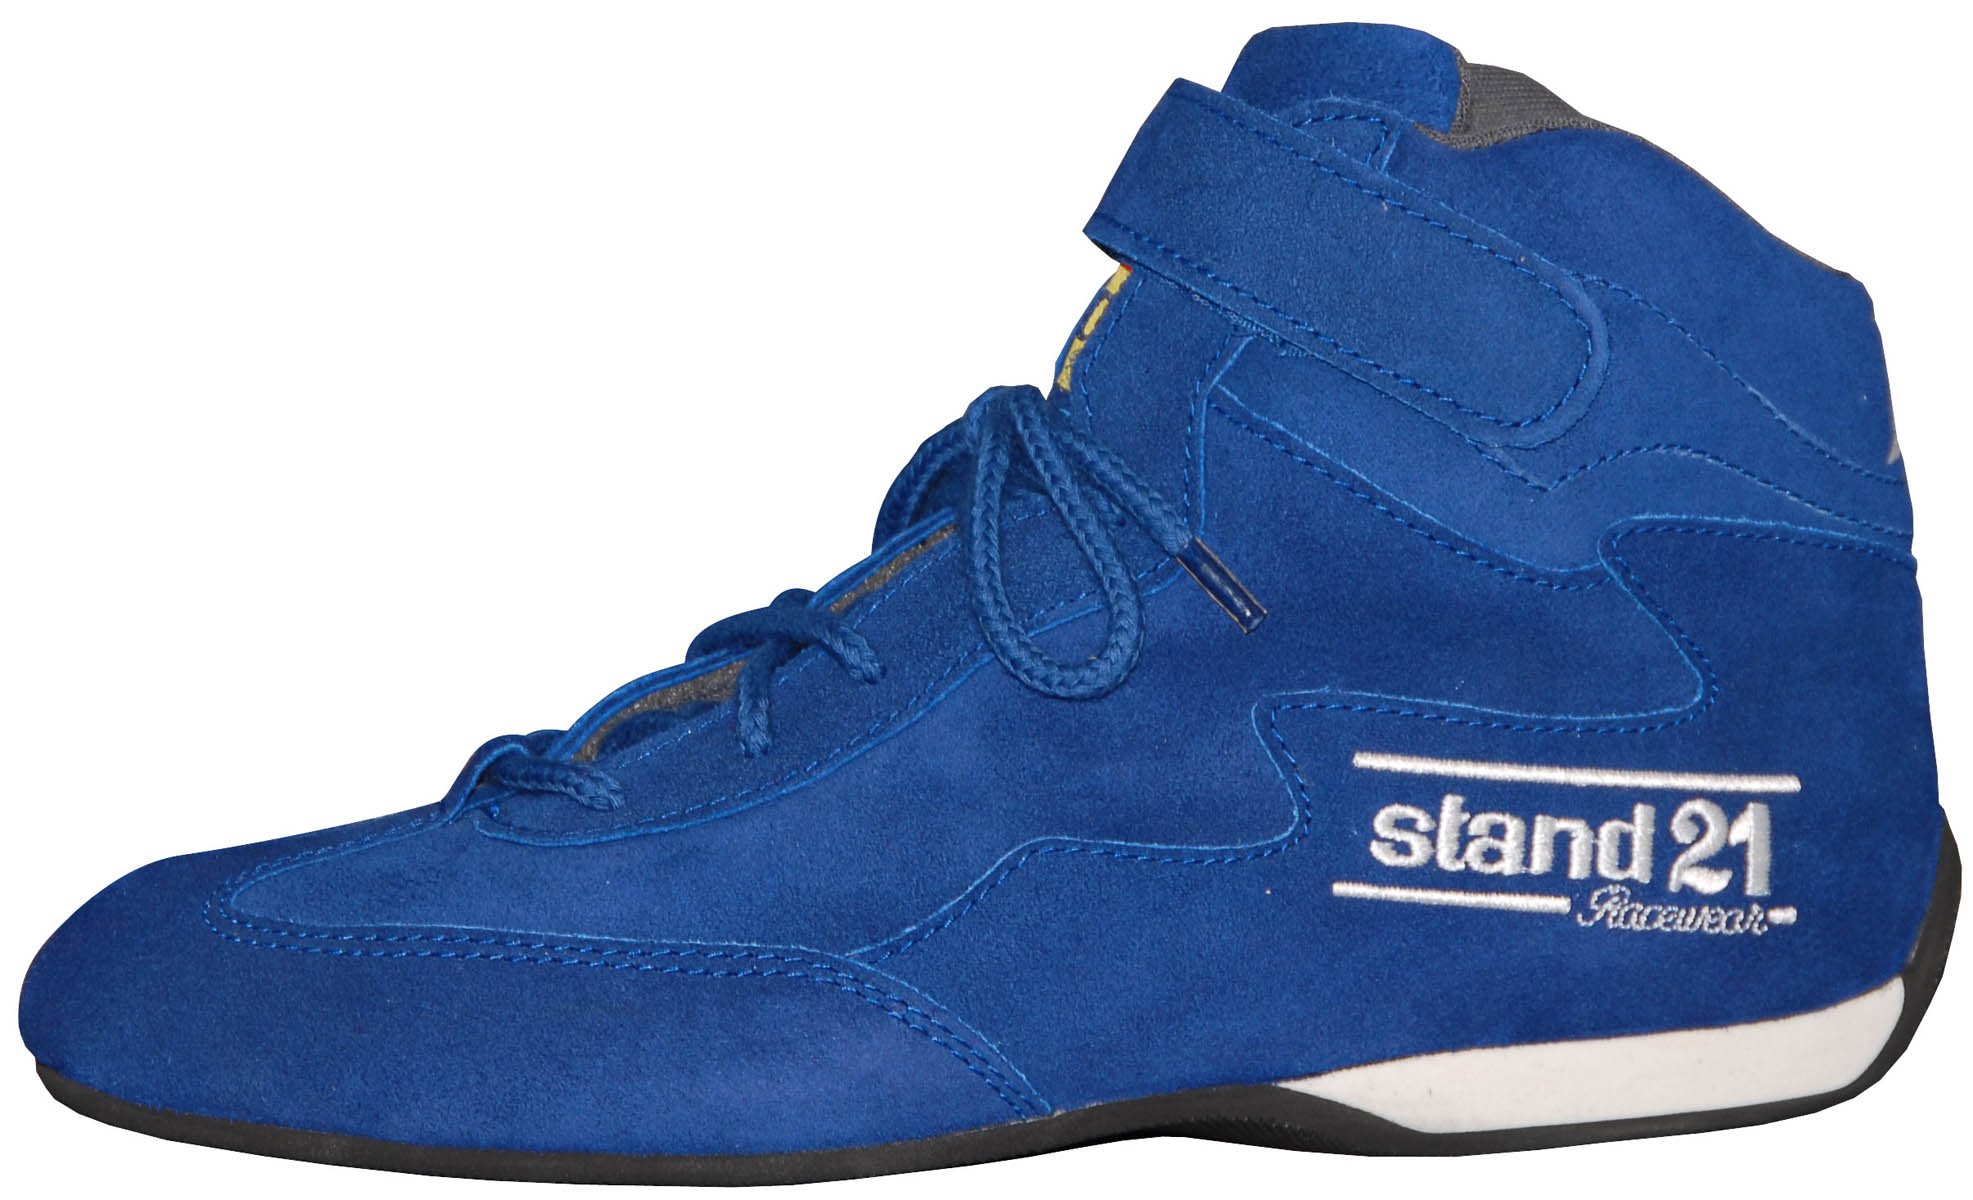 Stock royal blue Daytona II boots